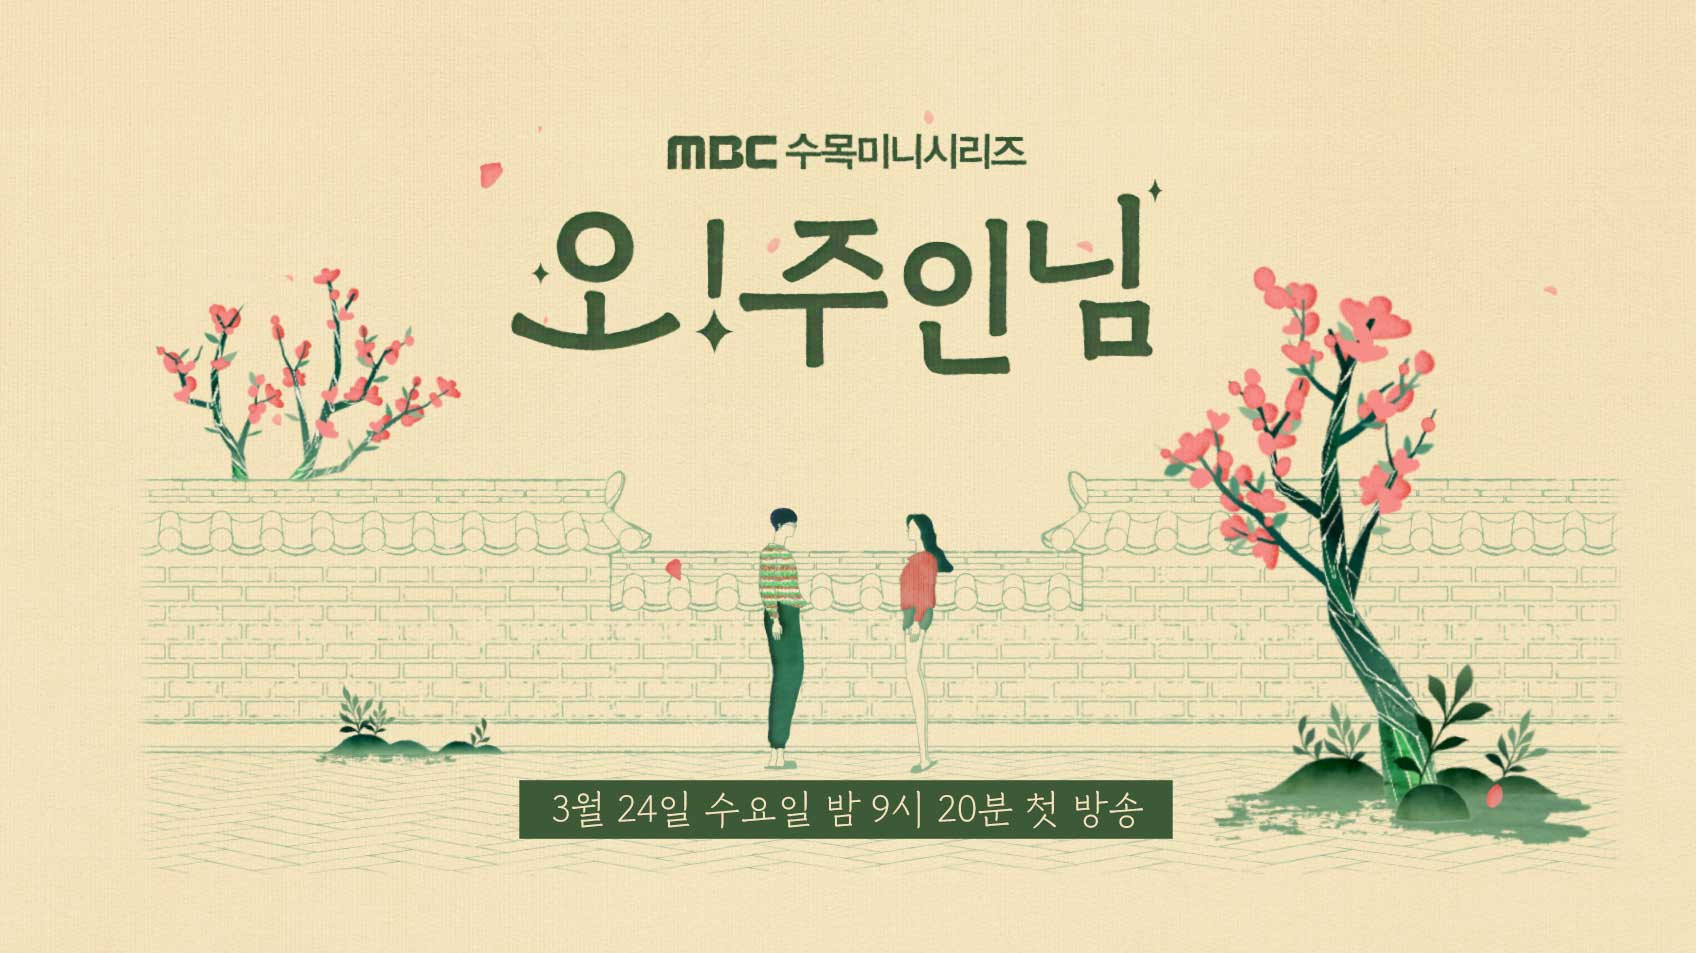 Oh My Ldylord Poster: Credits go to MBC Network.